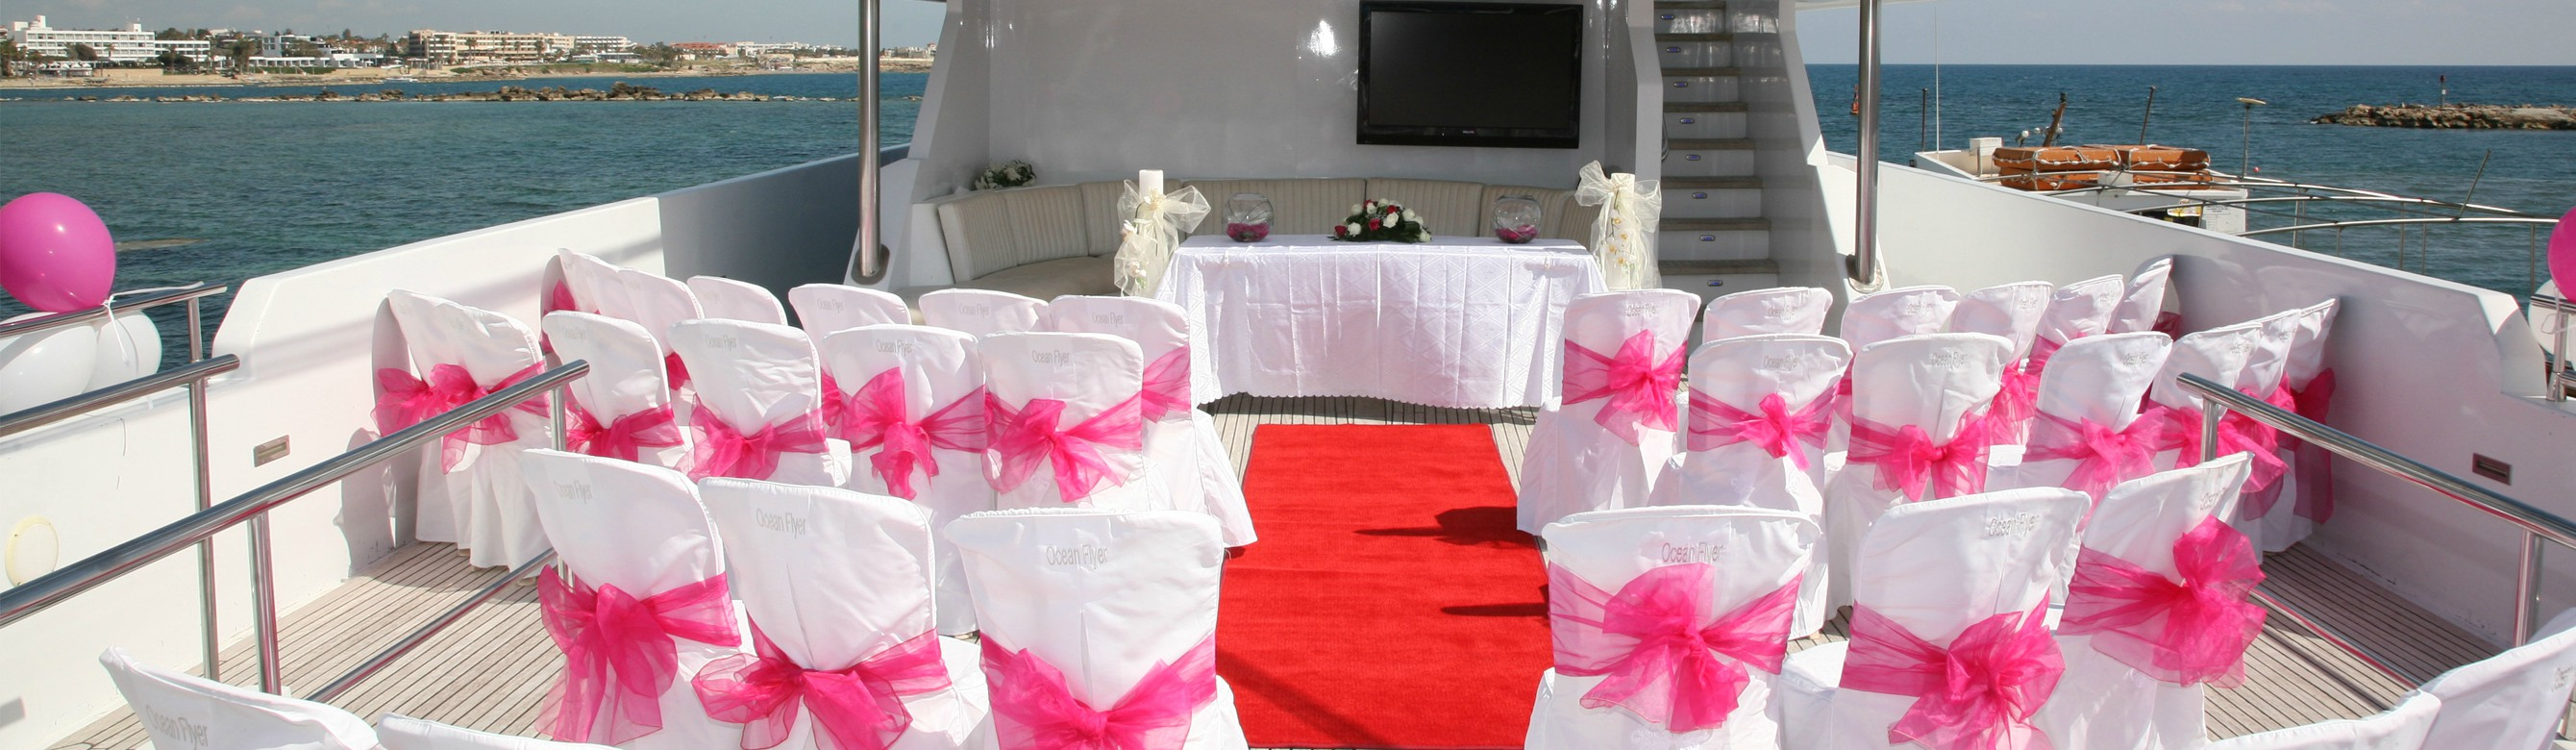 Ocean Flyer ceremony setup.jpg